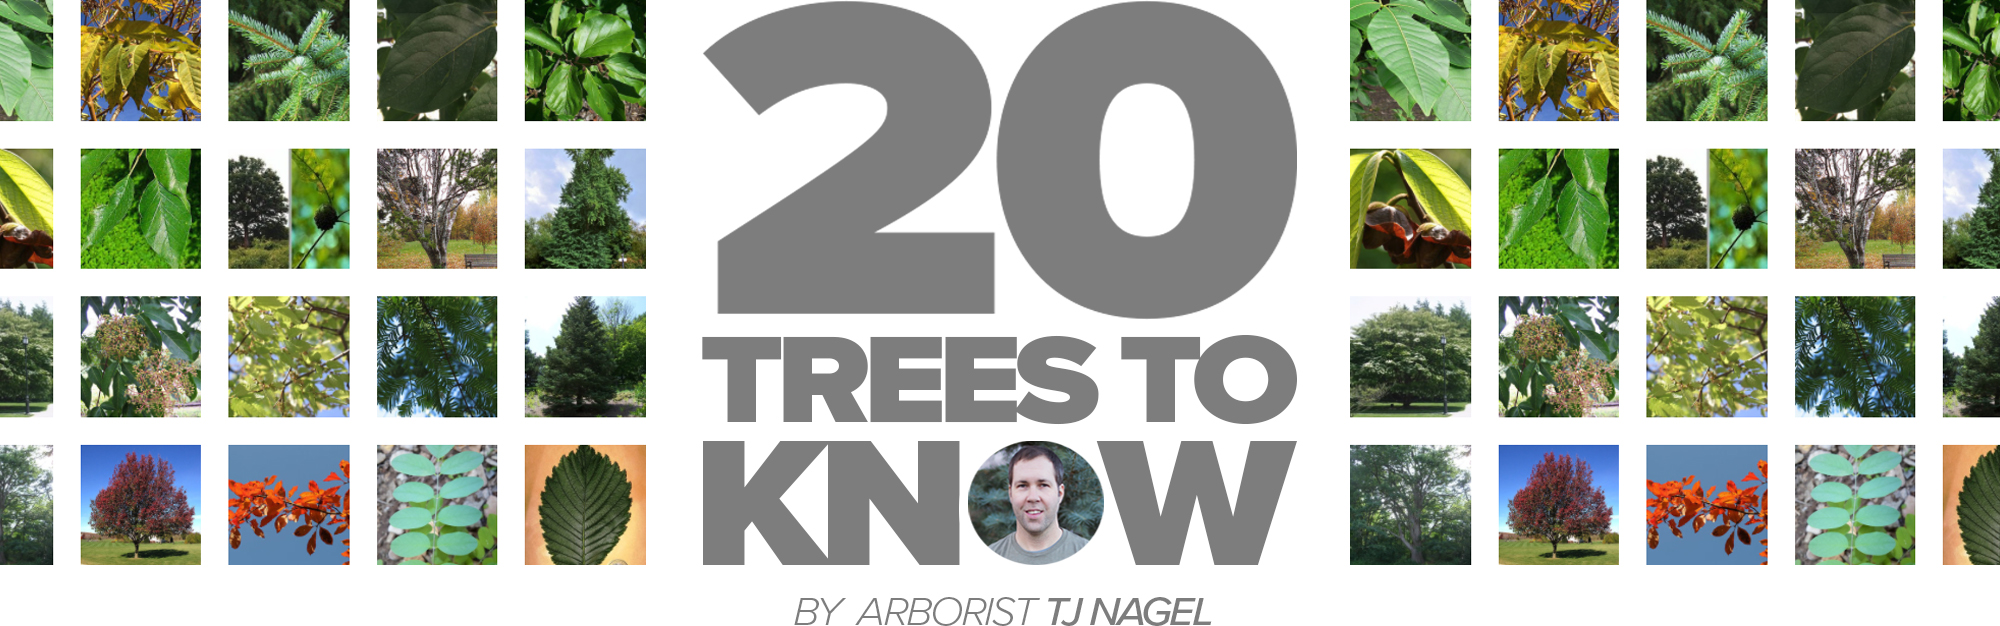 20 Trees to Know.jpg